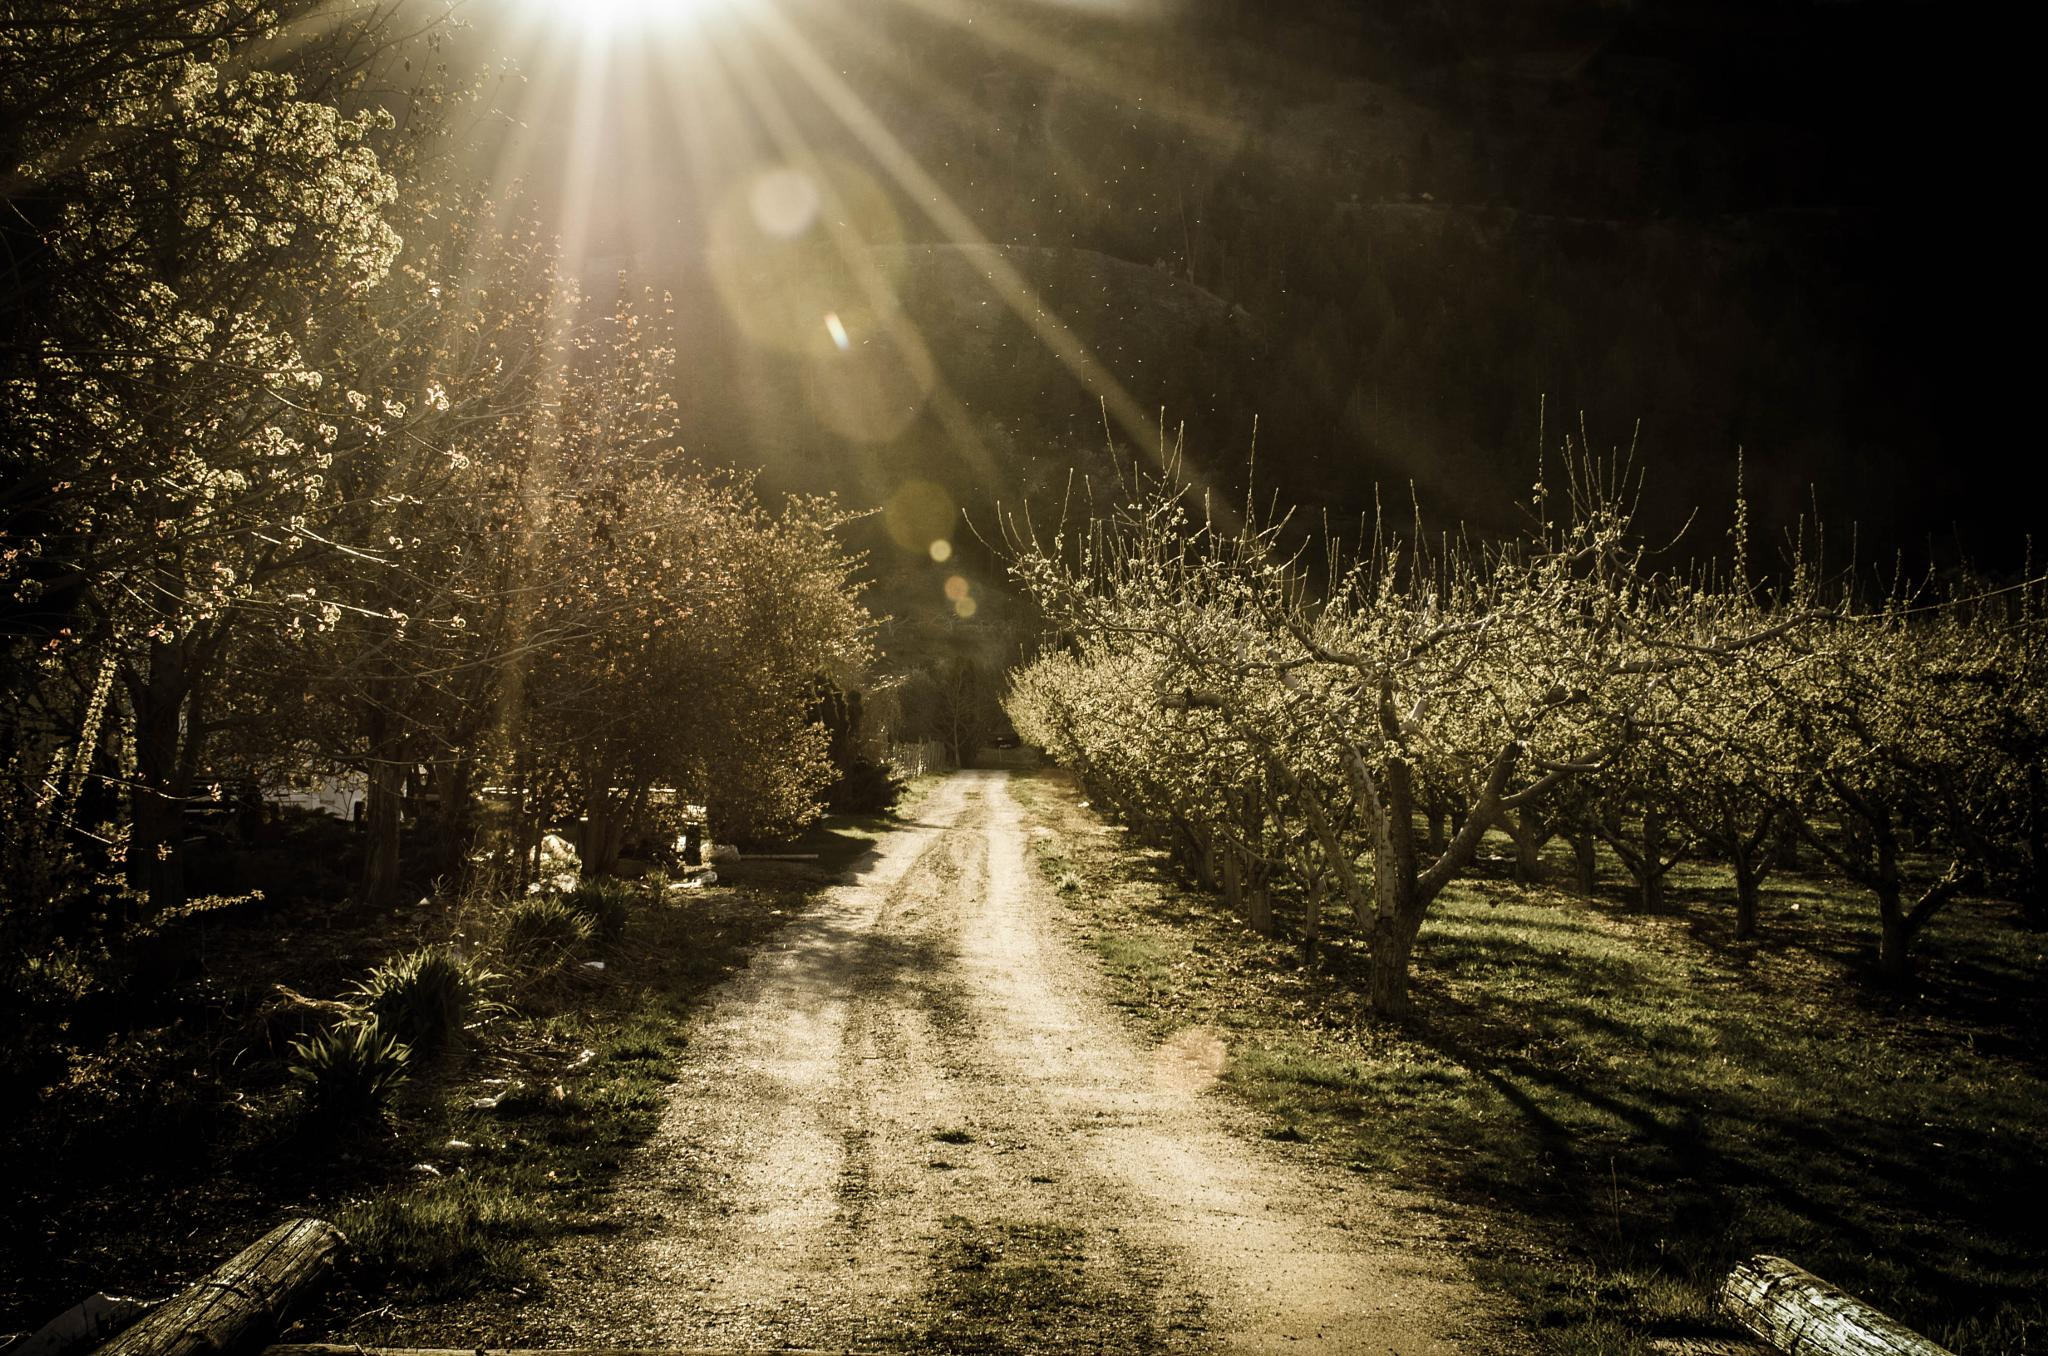 And The Sun Rained Down on the Orchard Below by Ang Klassen